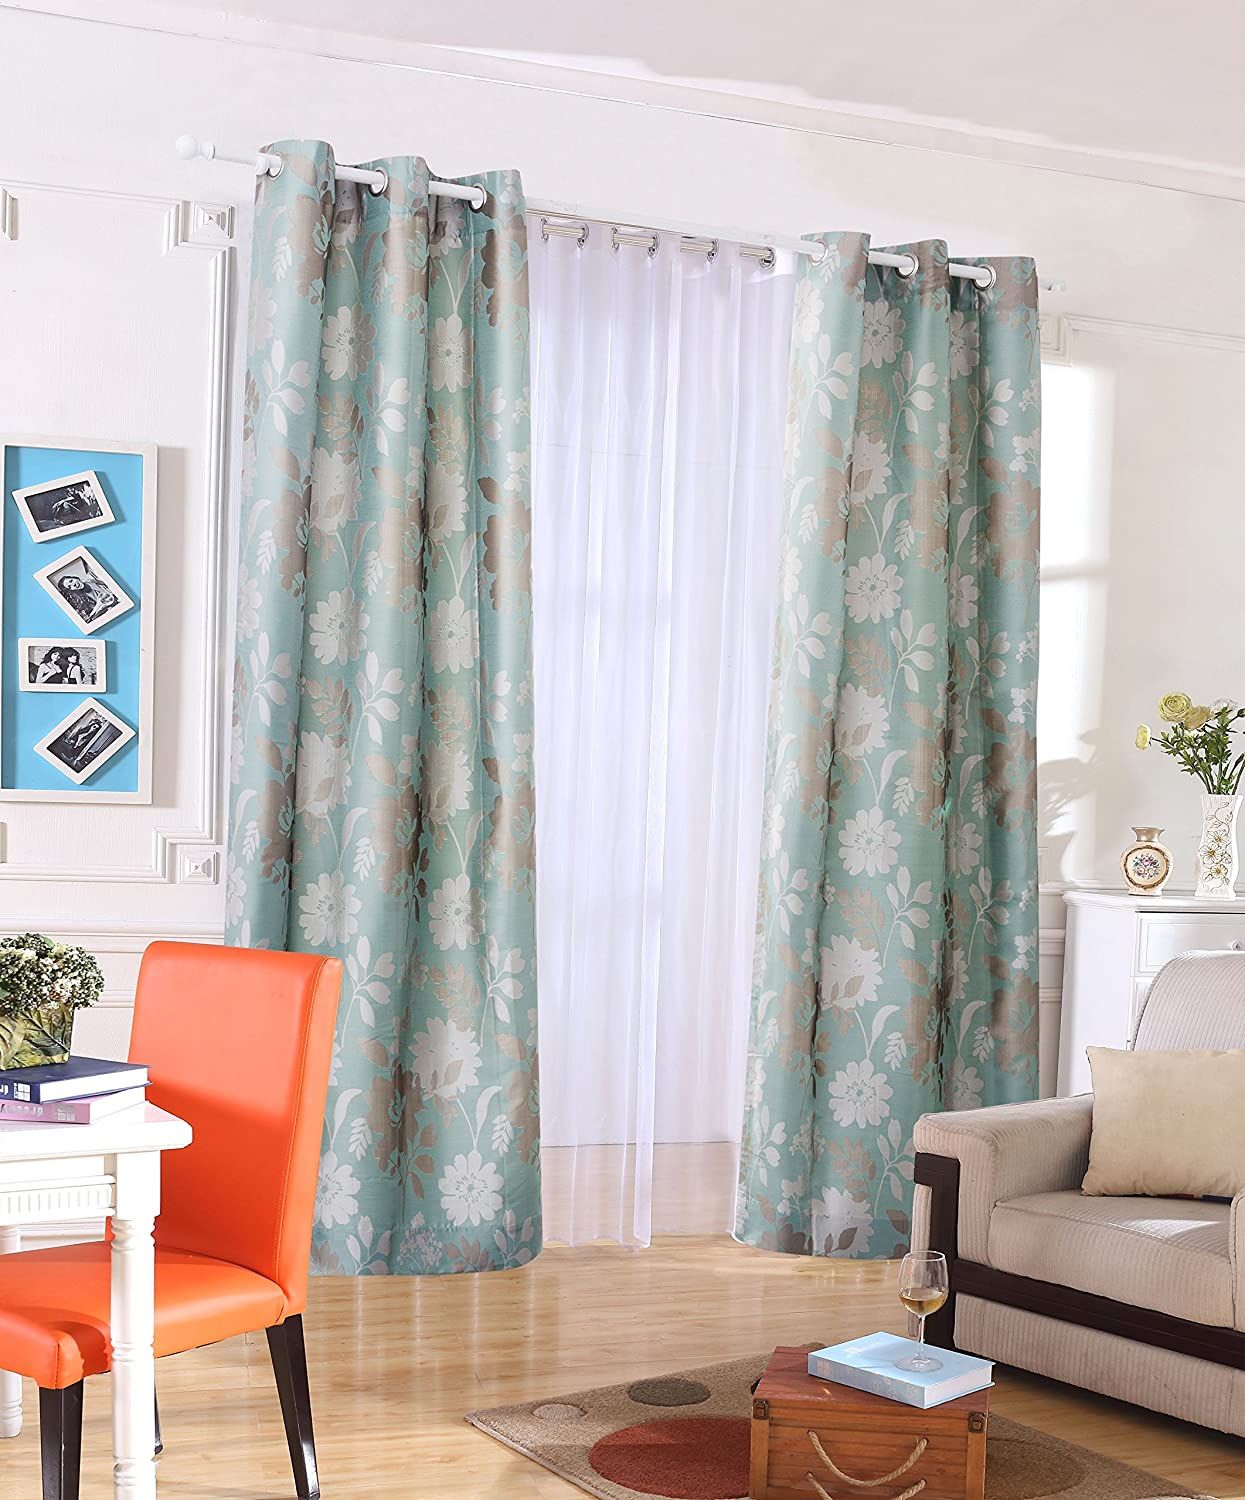 Vantextile Jacquard Eyelet Curtains Living Room Room Decorate Curtains 100 Polyester Jacquard Fabric Colorfast And Pattern Both Side Machine Washable One Pair 46 X72 Amazon Co Uk Kitchen Home